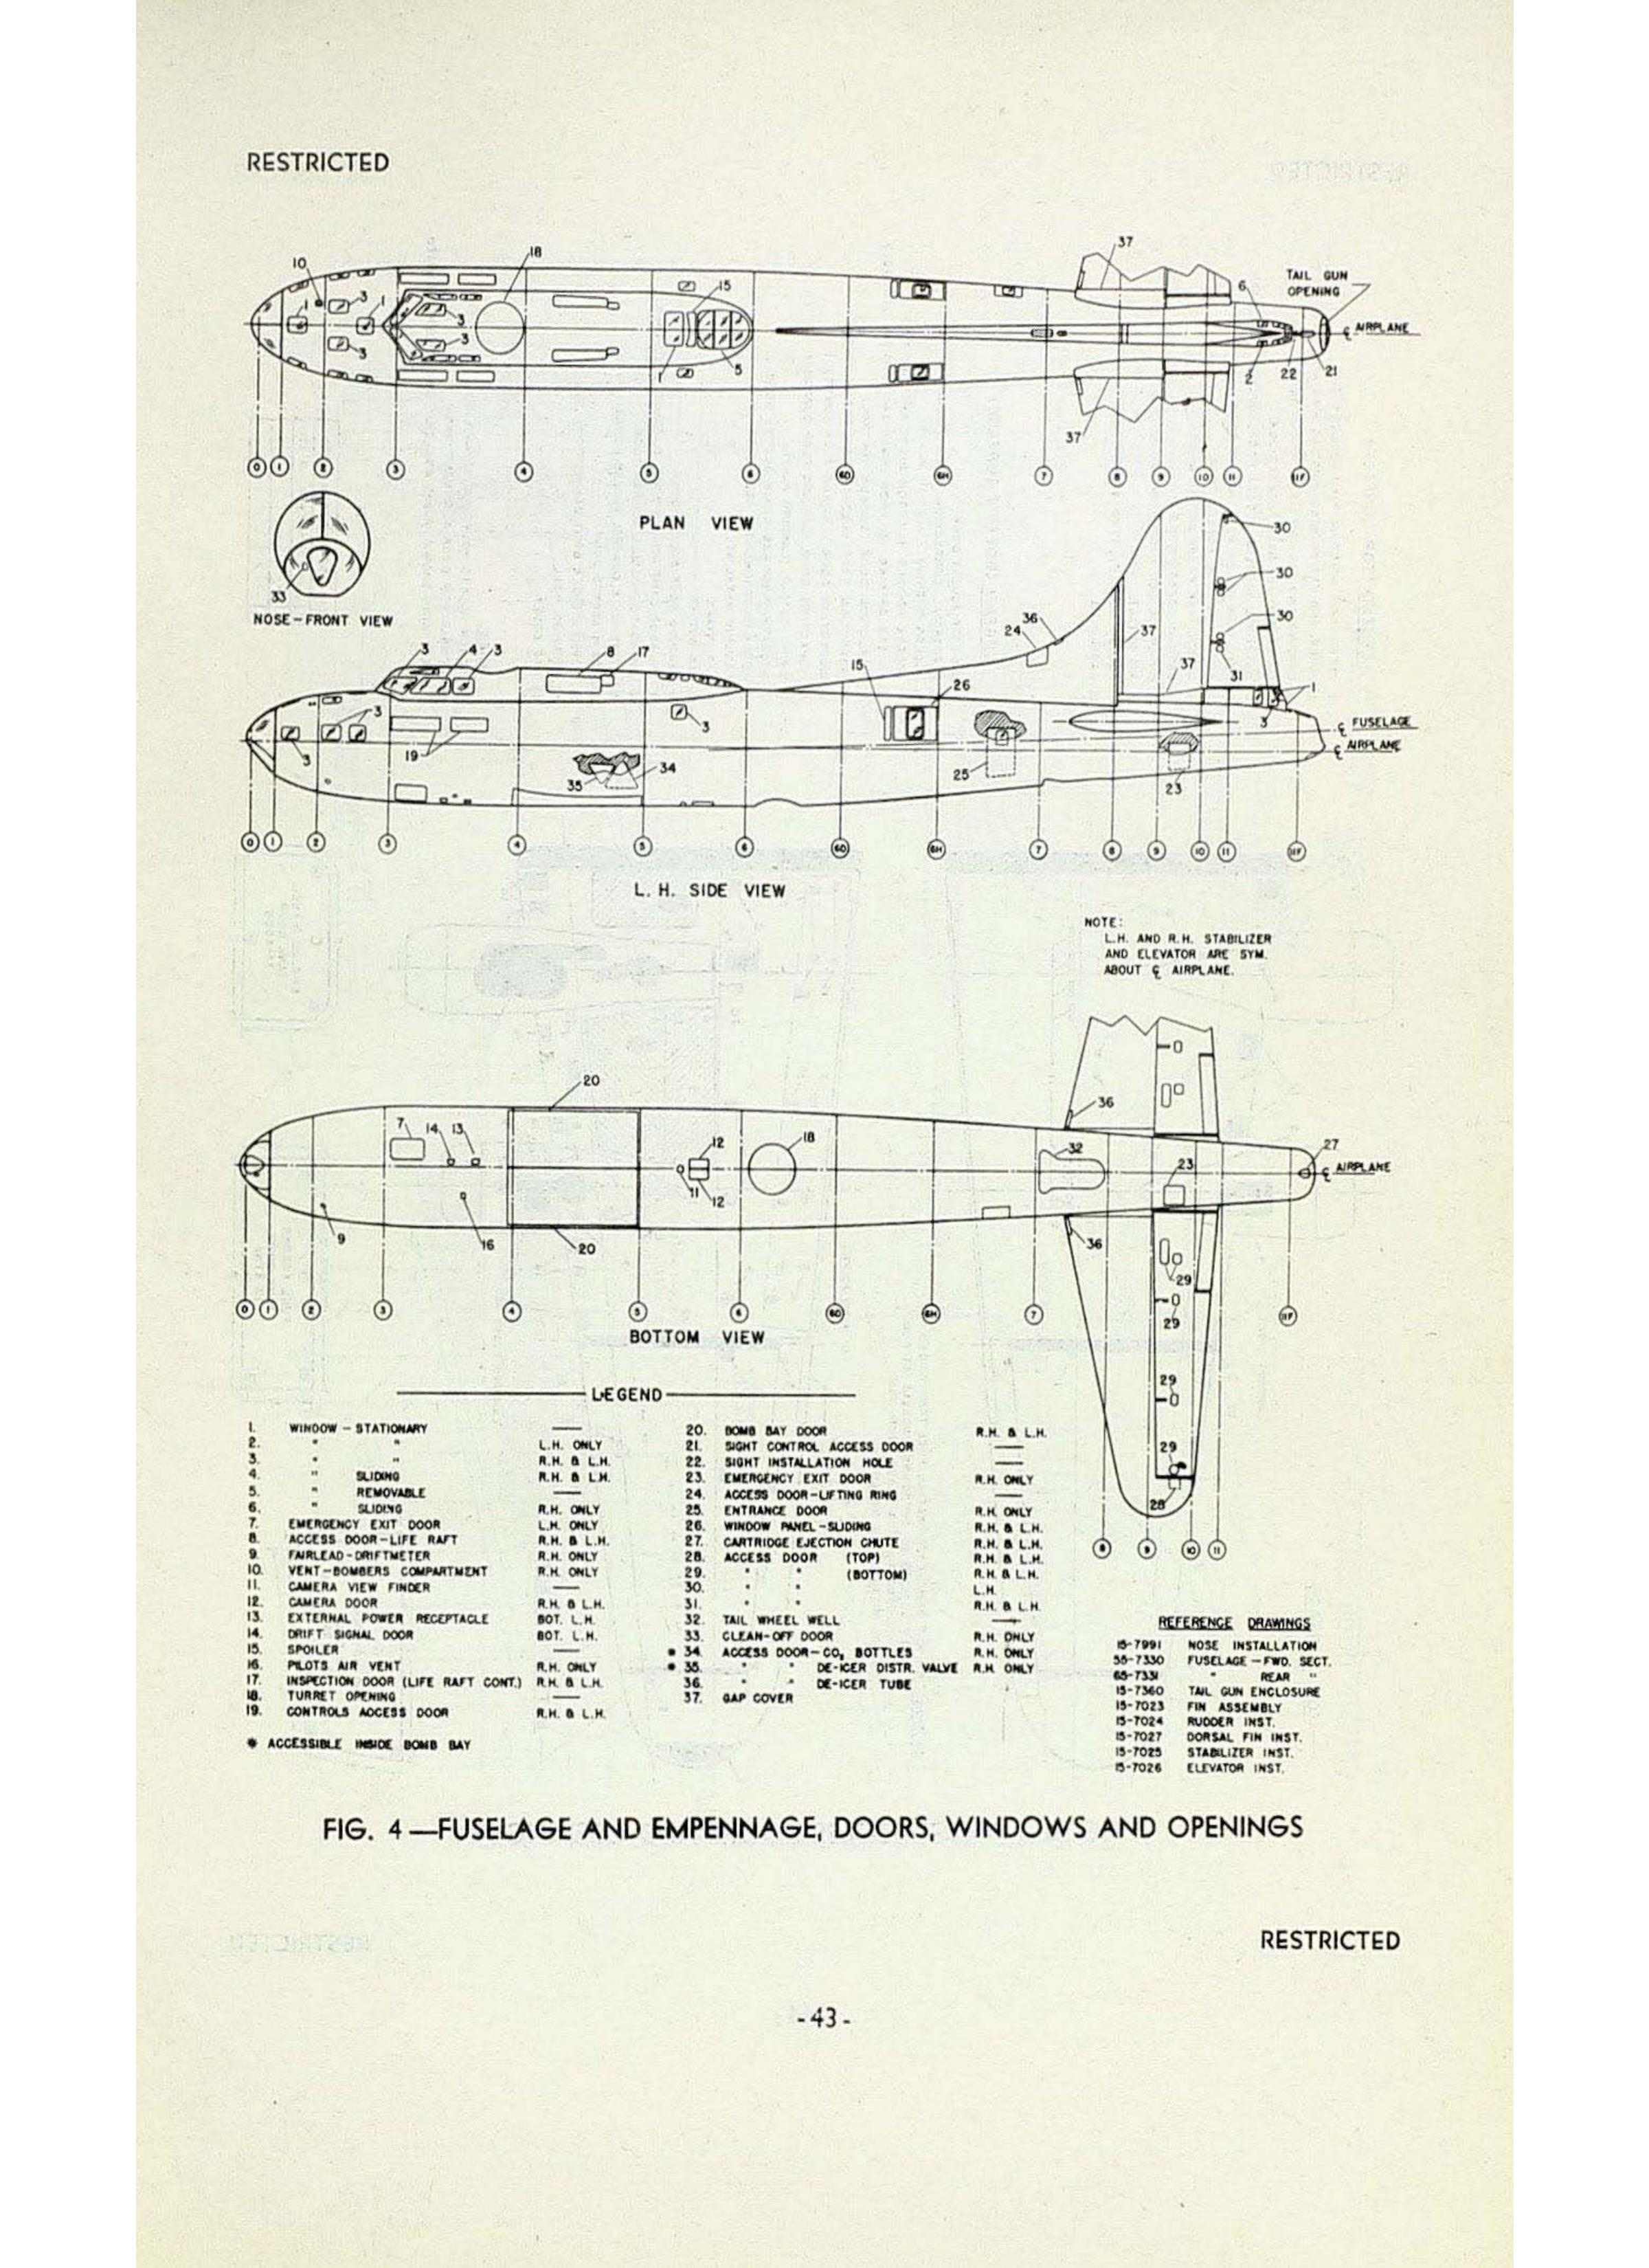 Sample page  43 from AirCorps Library document: Boeing B-17F Maintenance Familiarization Manual